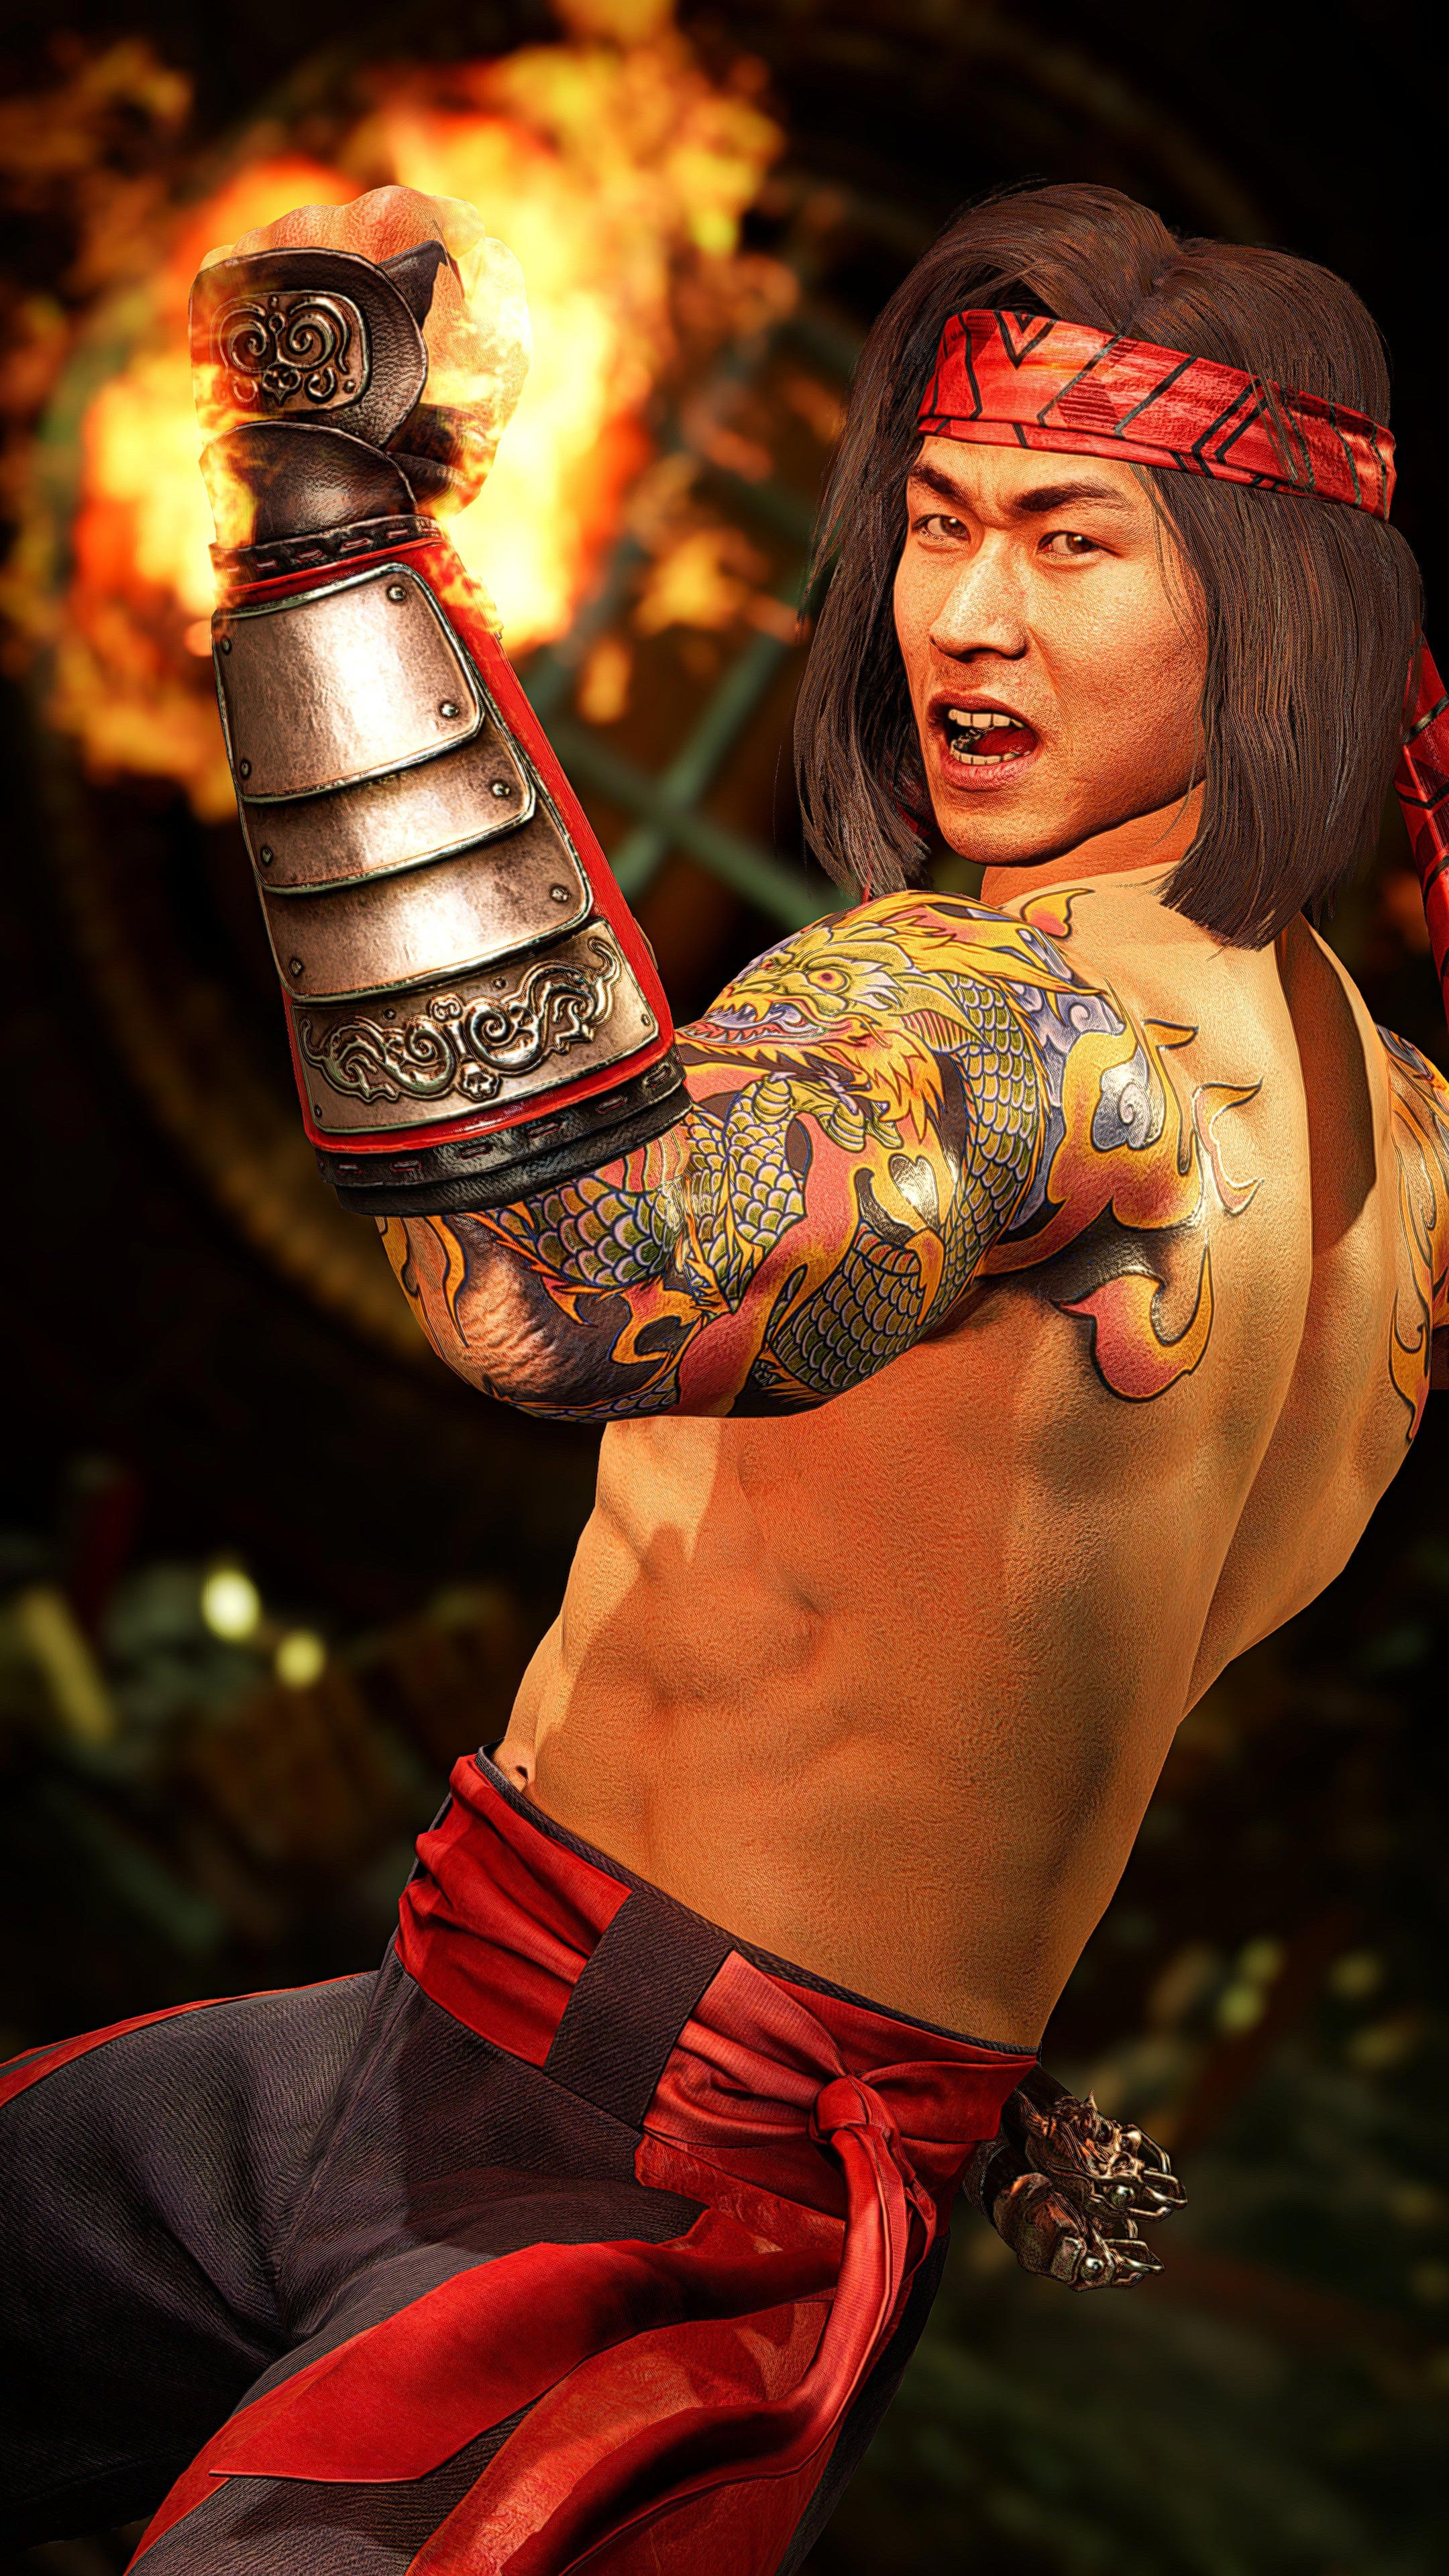 Liu Kang and Kotal Kahn rock their body paint and ink in Mortal Kombat 11 Ultimate 1 out of 8 image gallery